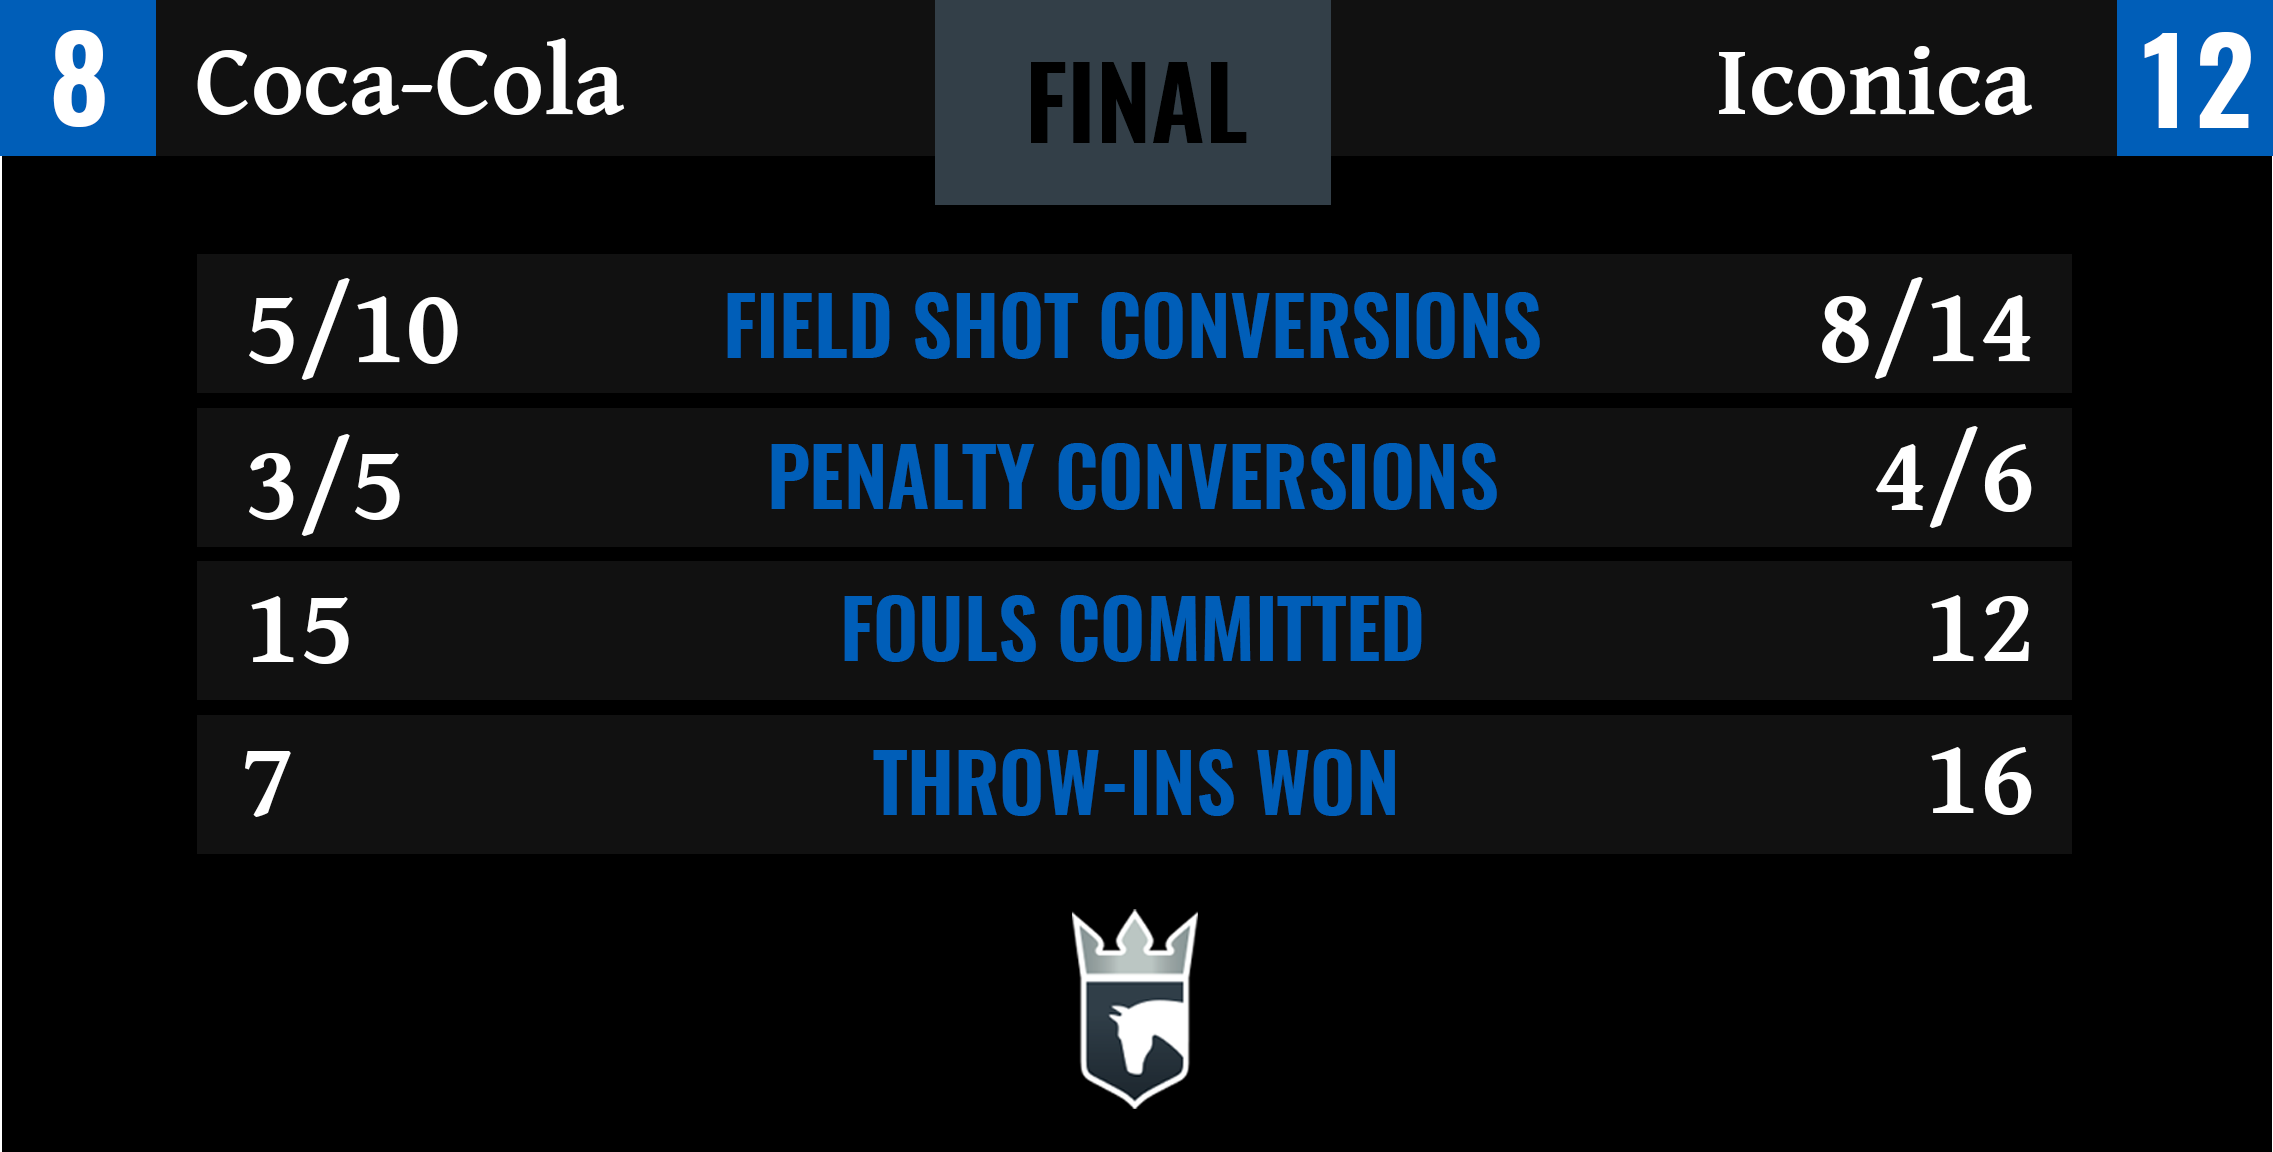 Coca-Cola vs Iconica Final Stats